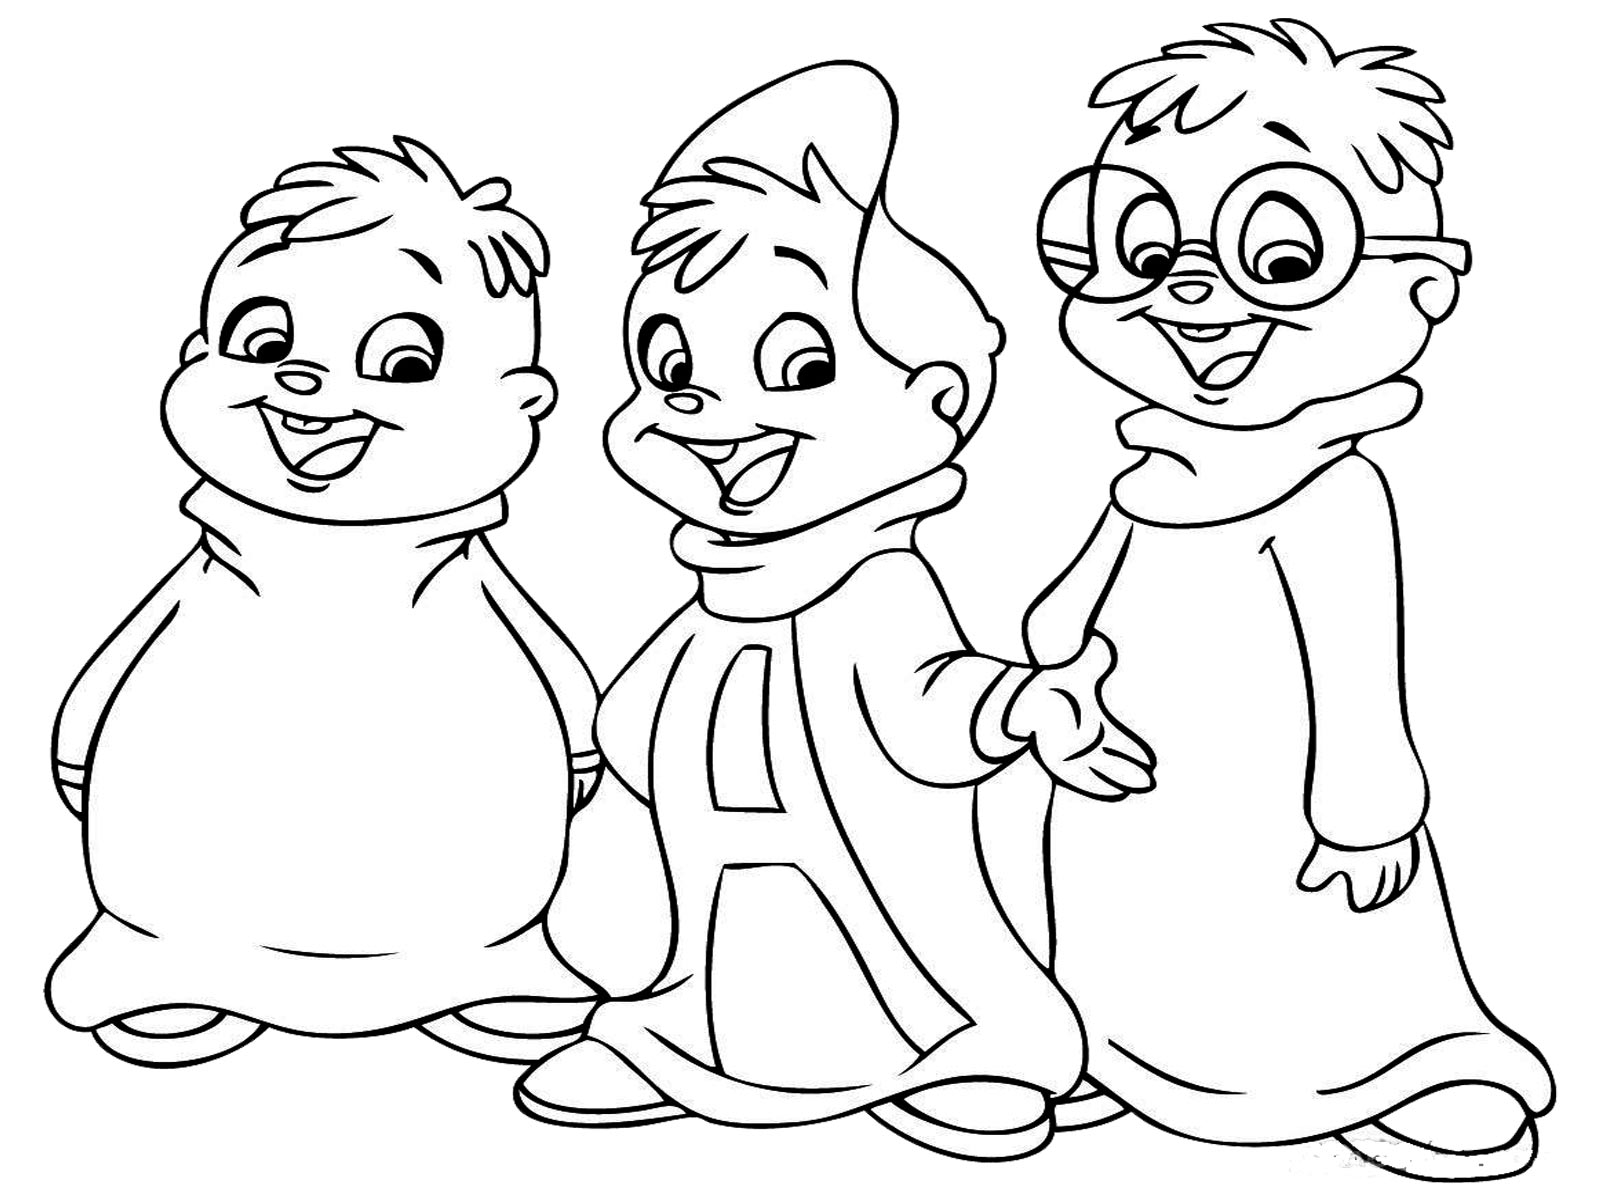 Chipmunk Coloring Pages (19 Pictures) - Colorine.net   17379 - Coloring Home